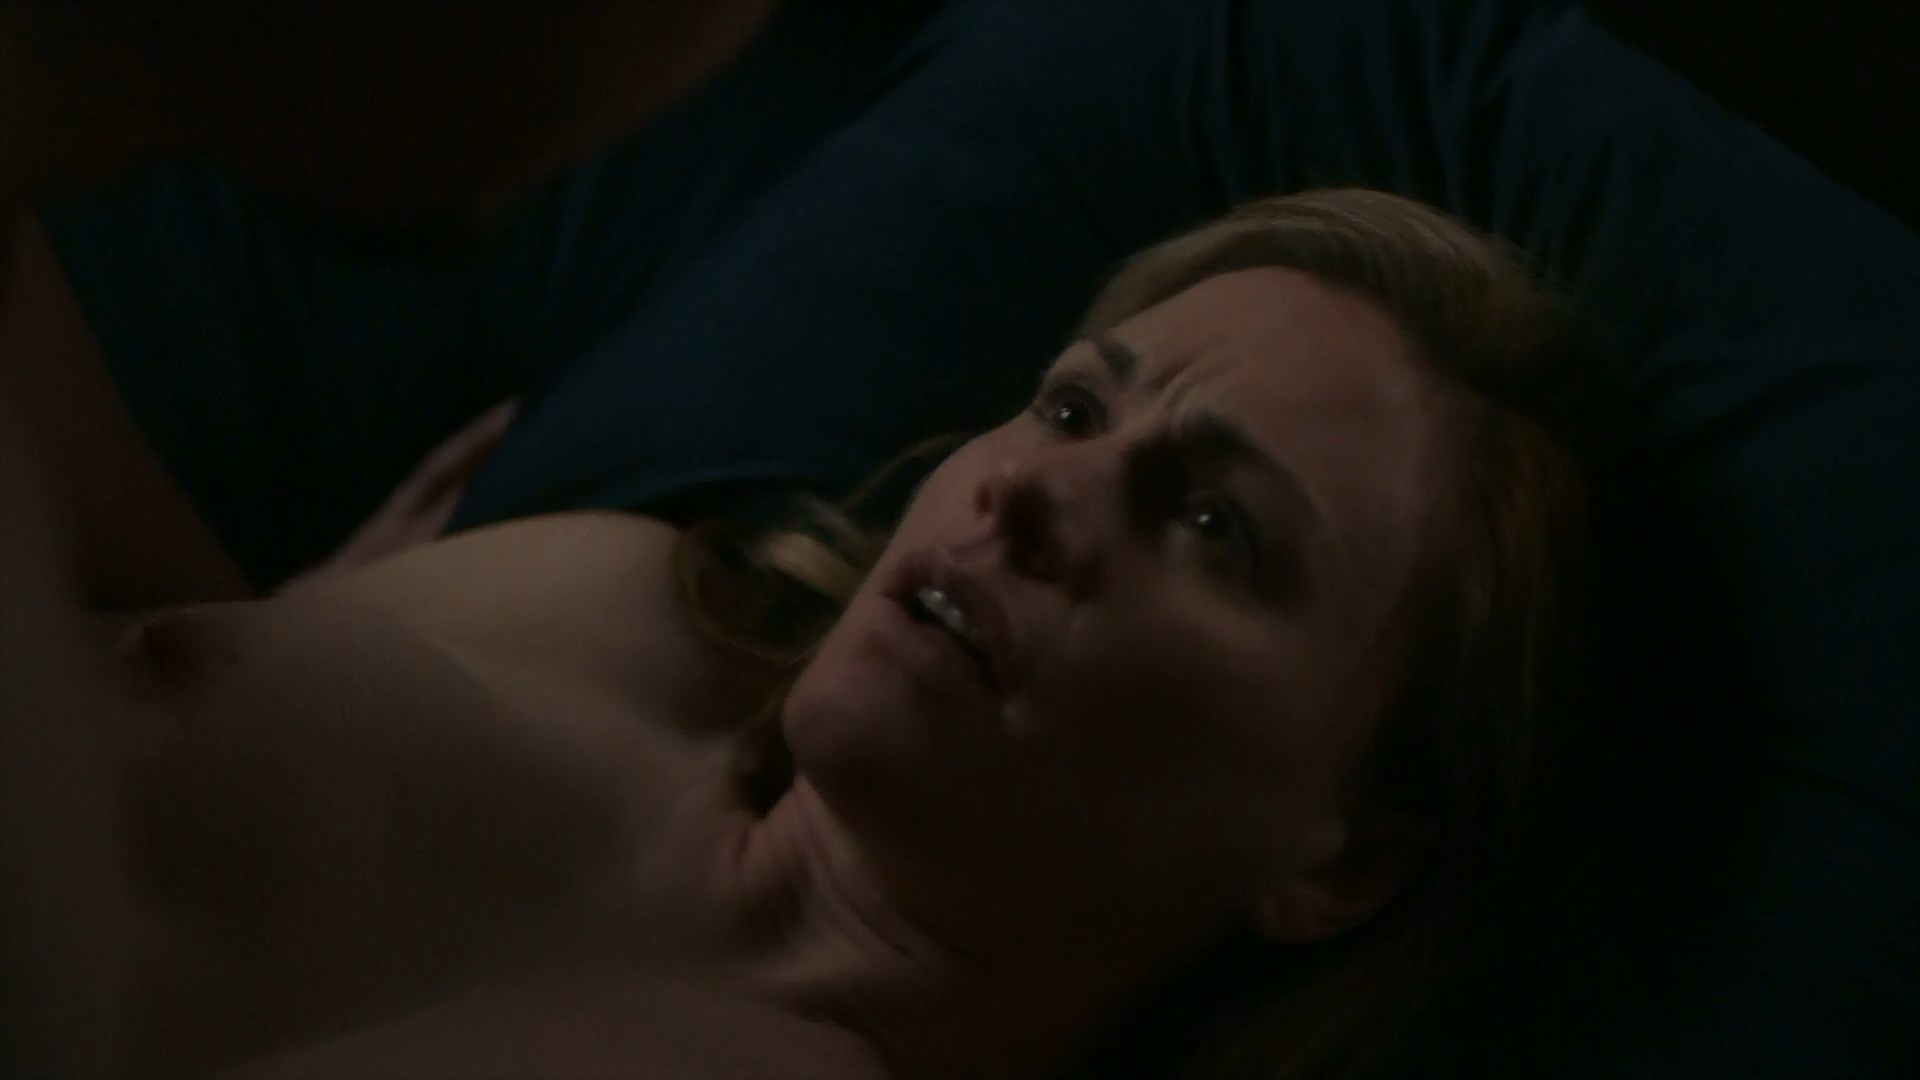 Anna Paquin nude - The Affair s05e06 (2019)